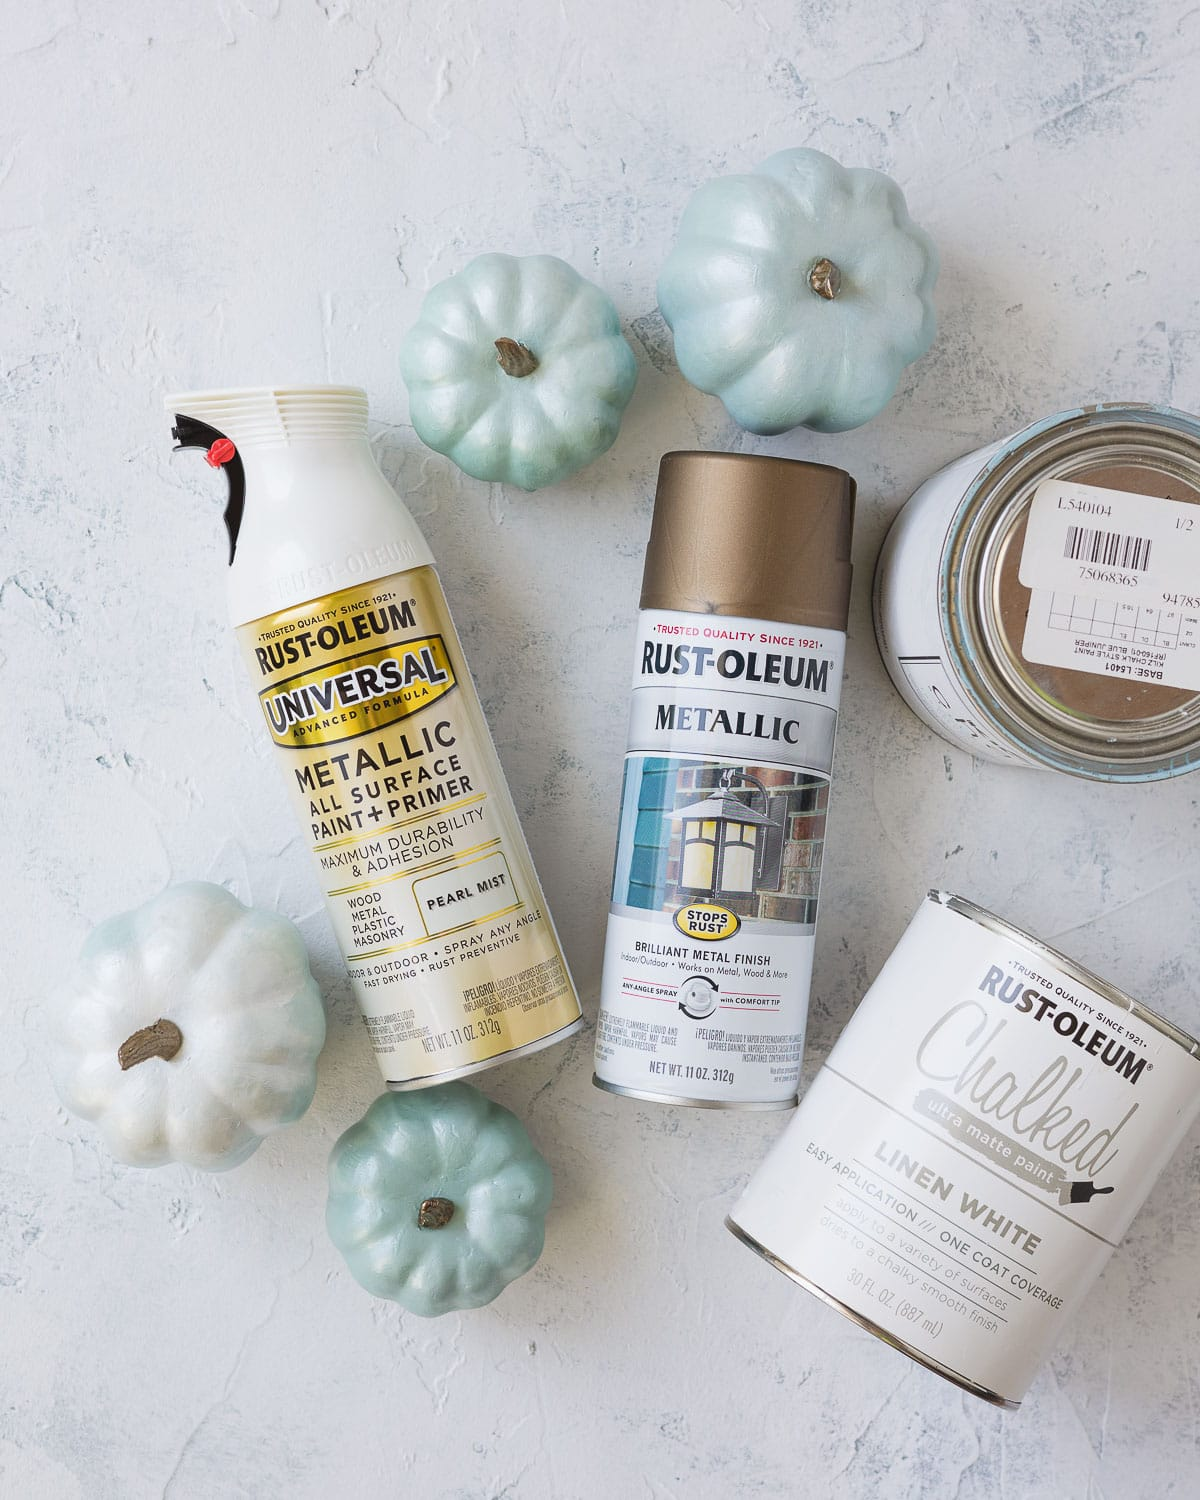 Spray paints, chalk paint, and DIY chalk painted pumpkins on a rustic surface.